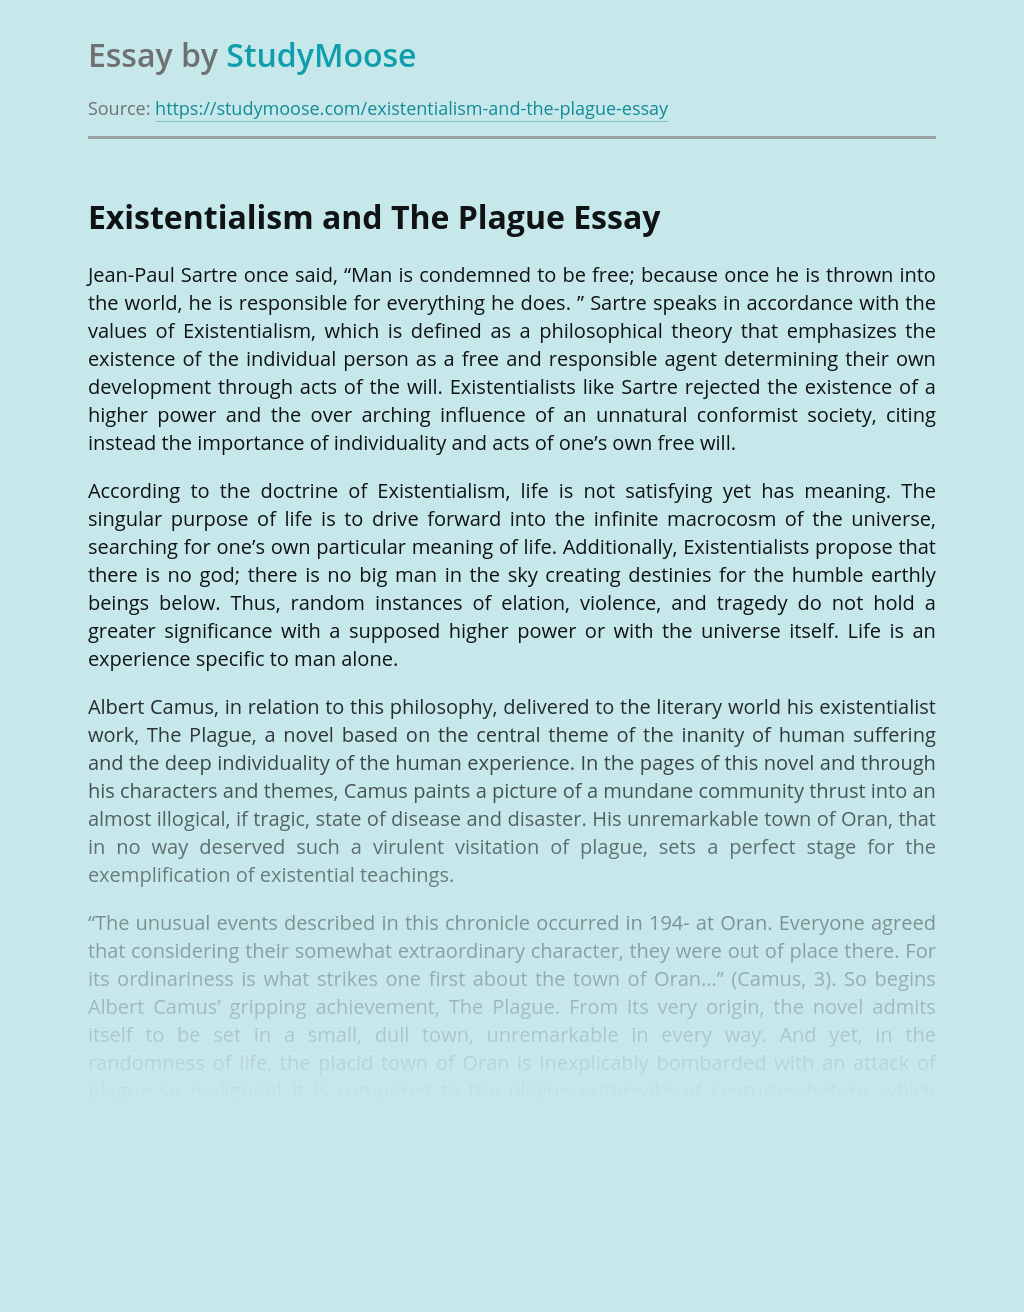 Existentialism and The Plague